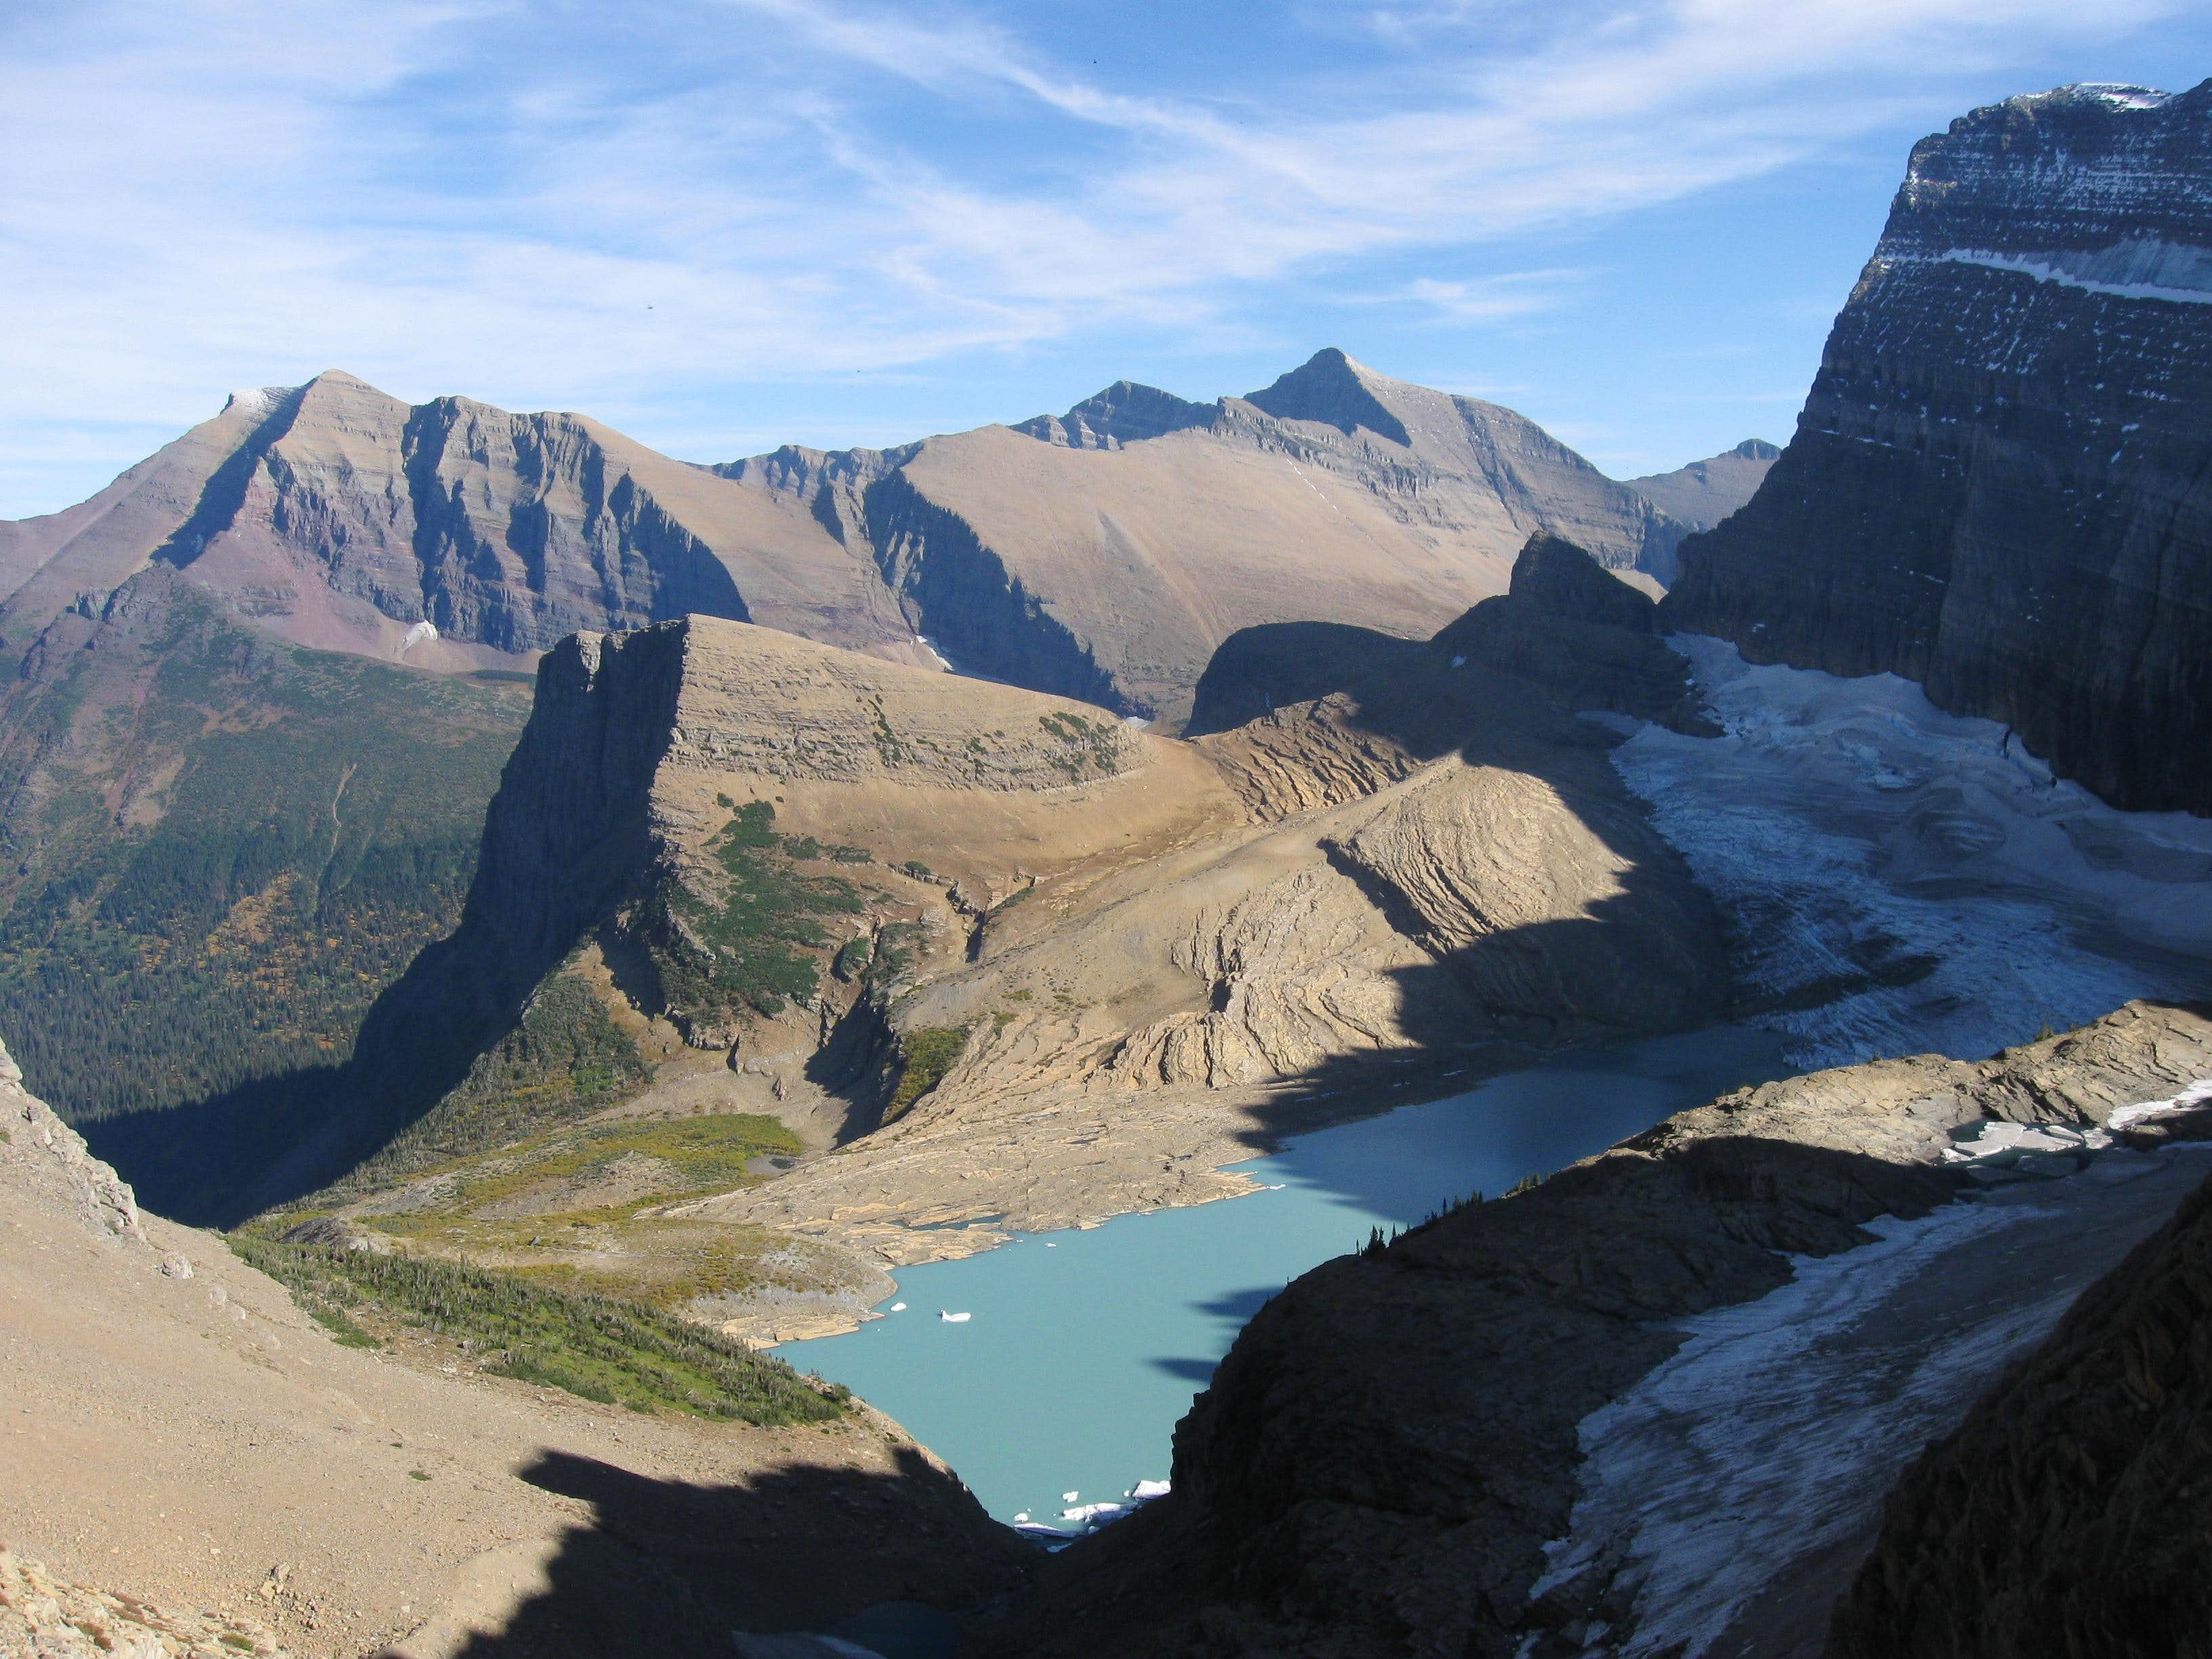 Grinnell Glacier Overlook - 9.23.2015